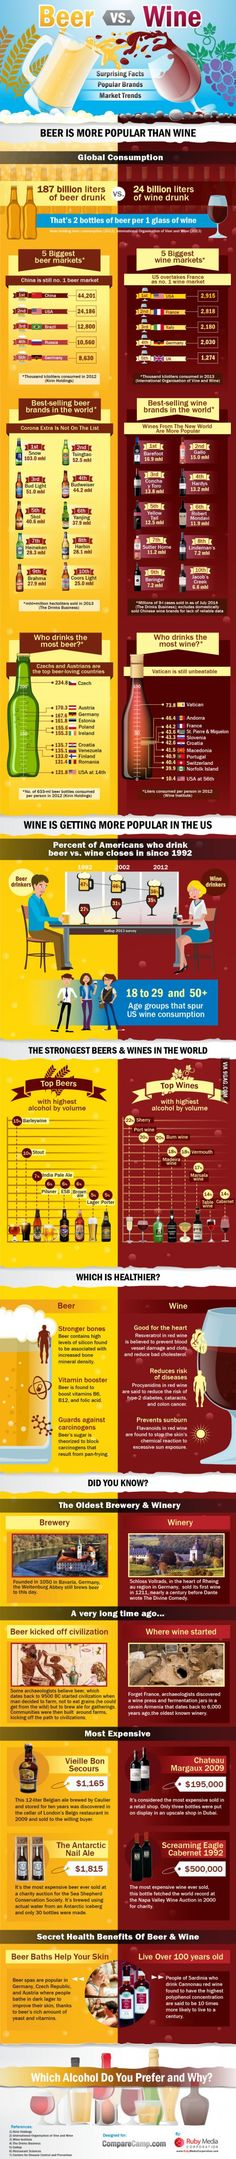 Beer vs wine infographic